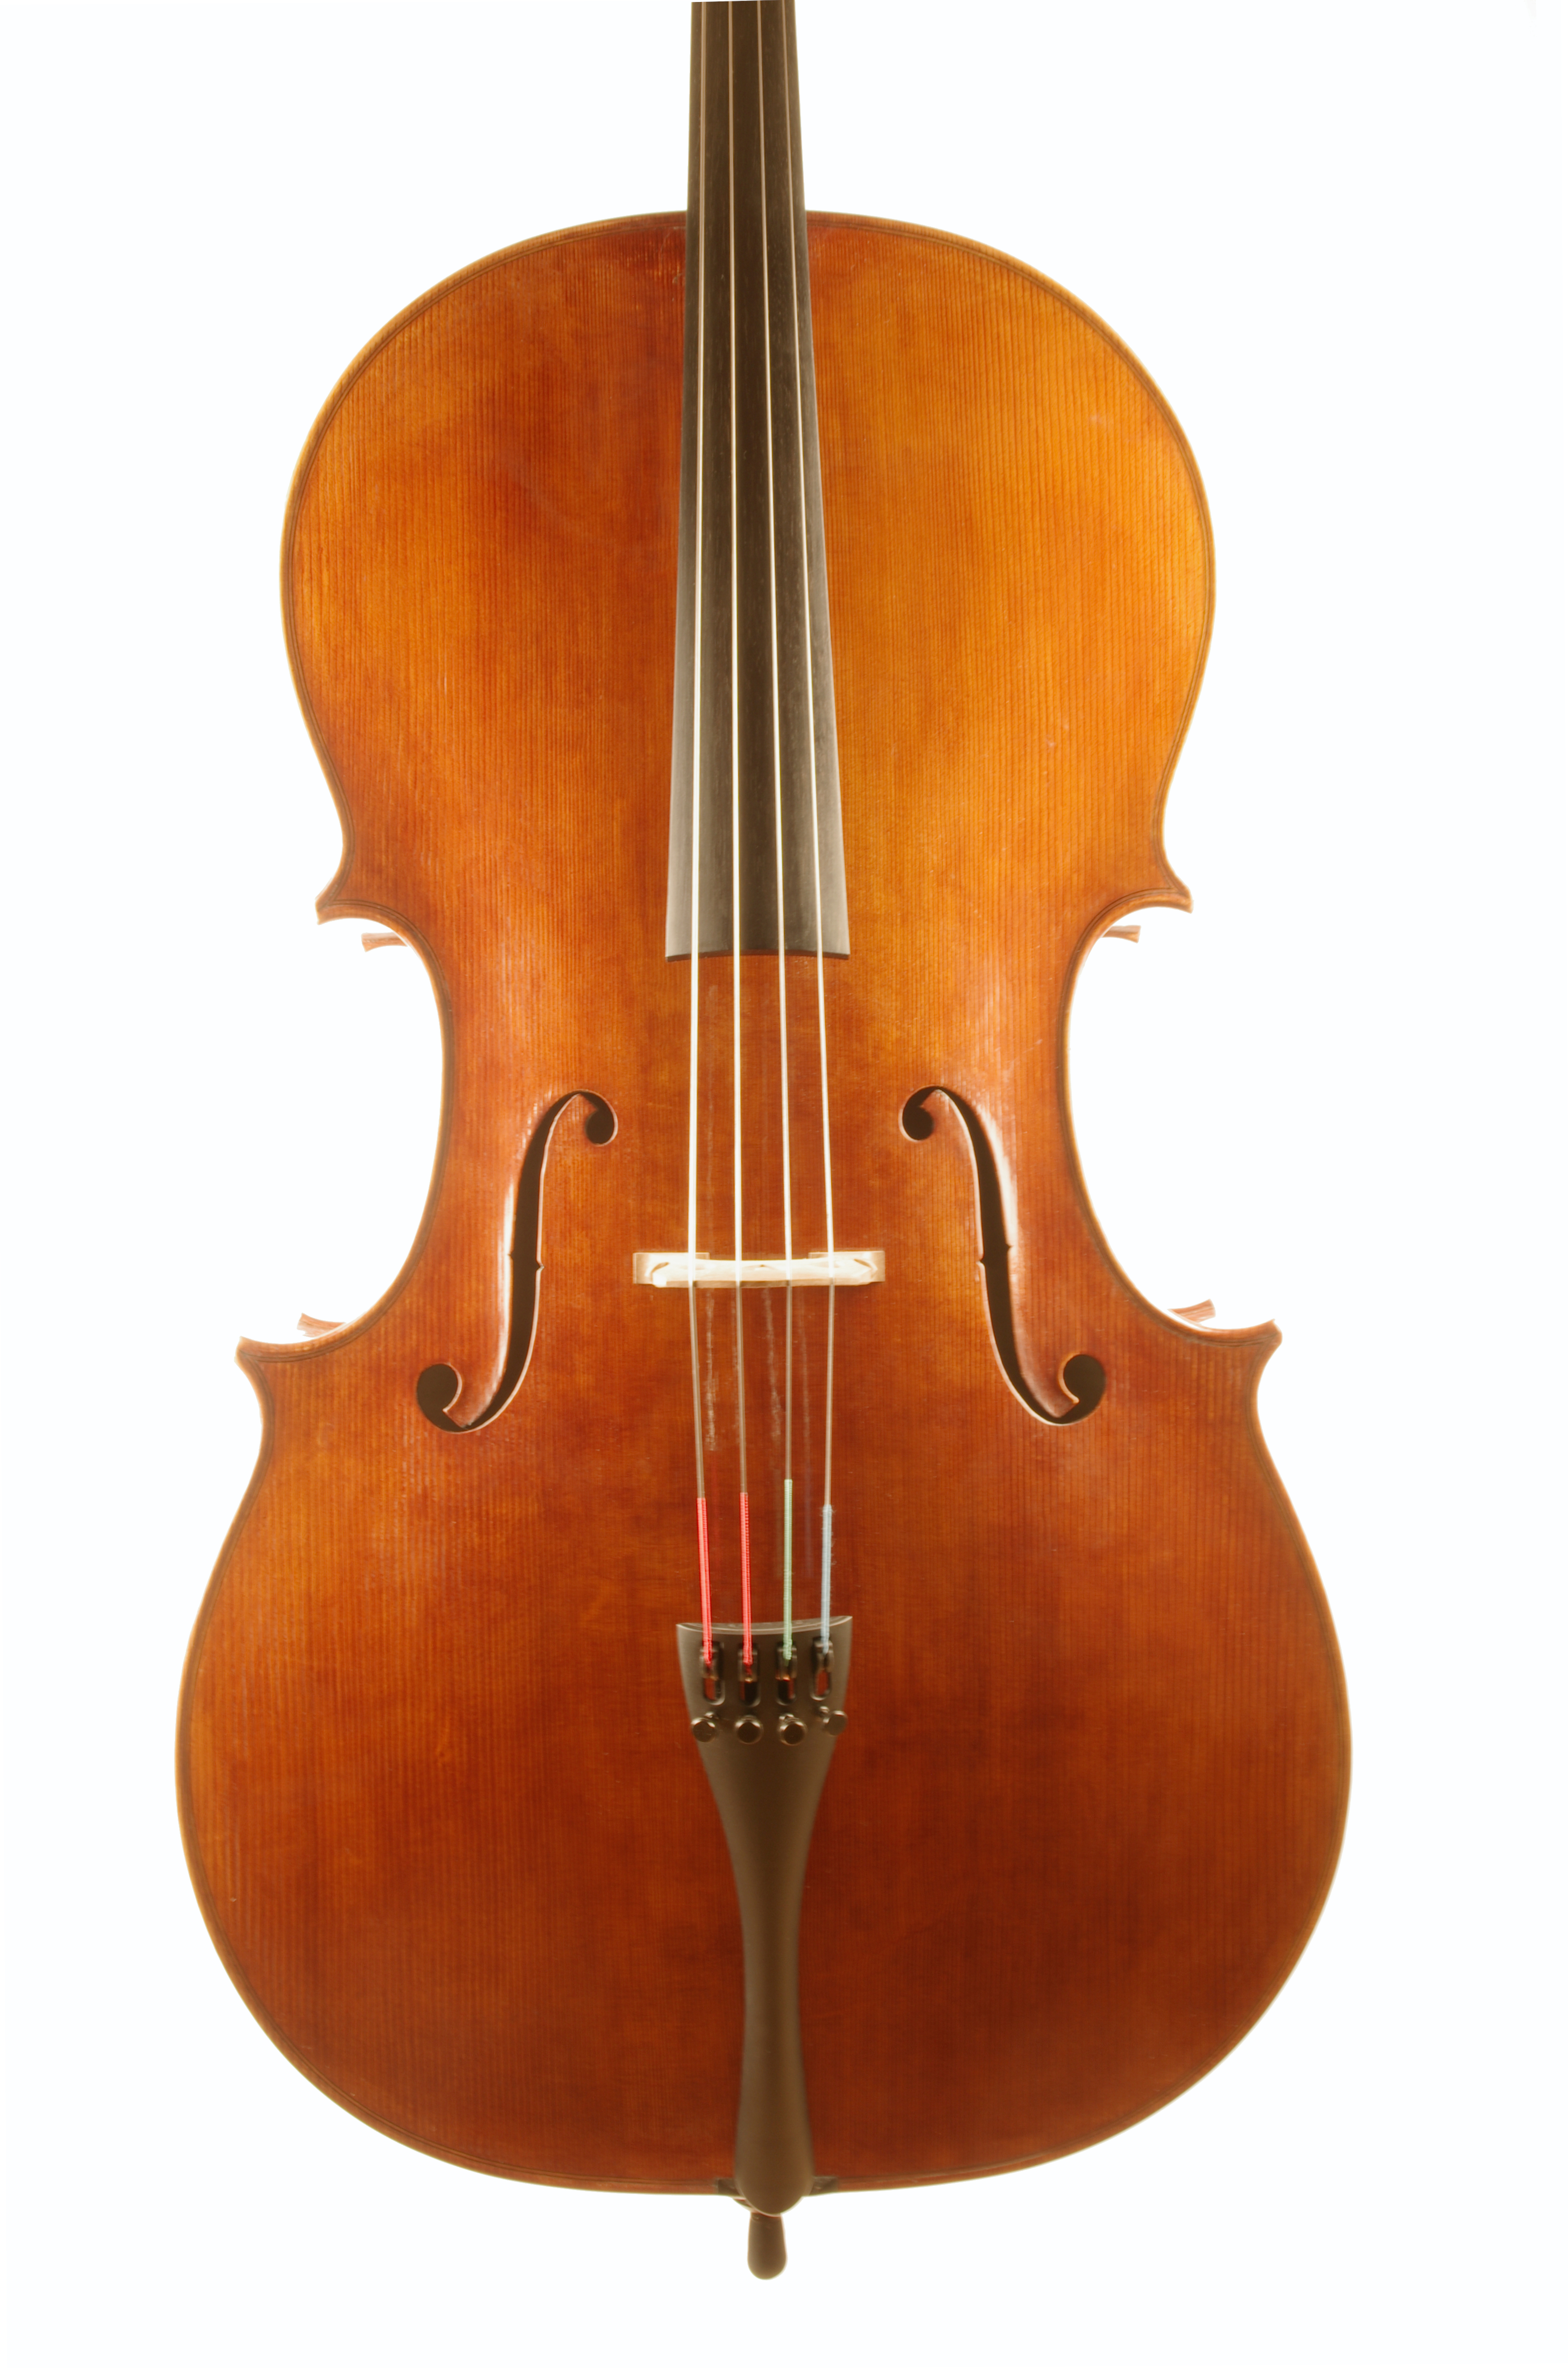 Violoncelle - Luthier Benjamin Beugnies